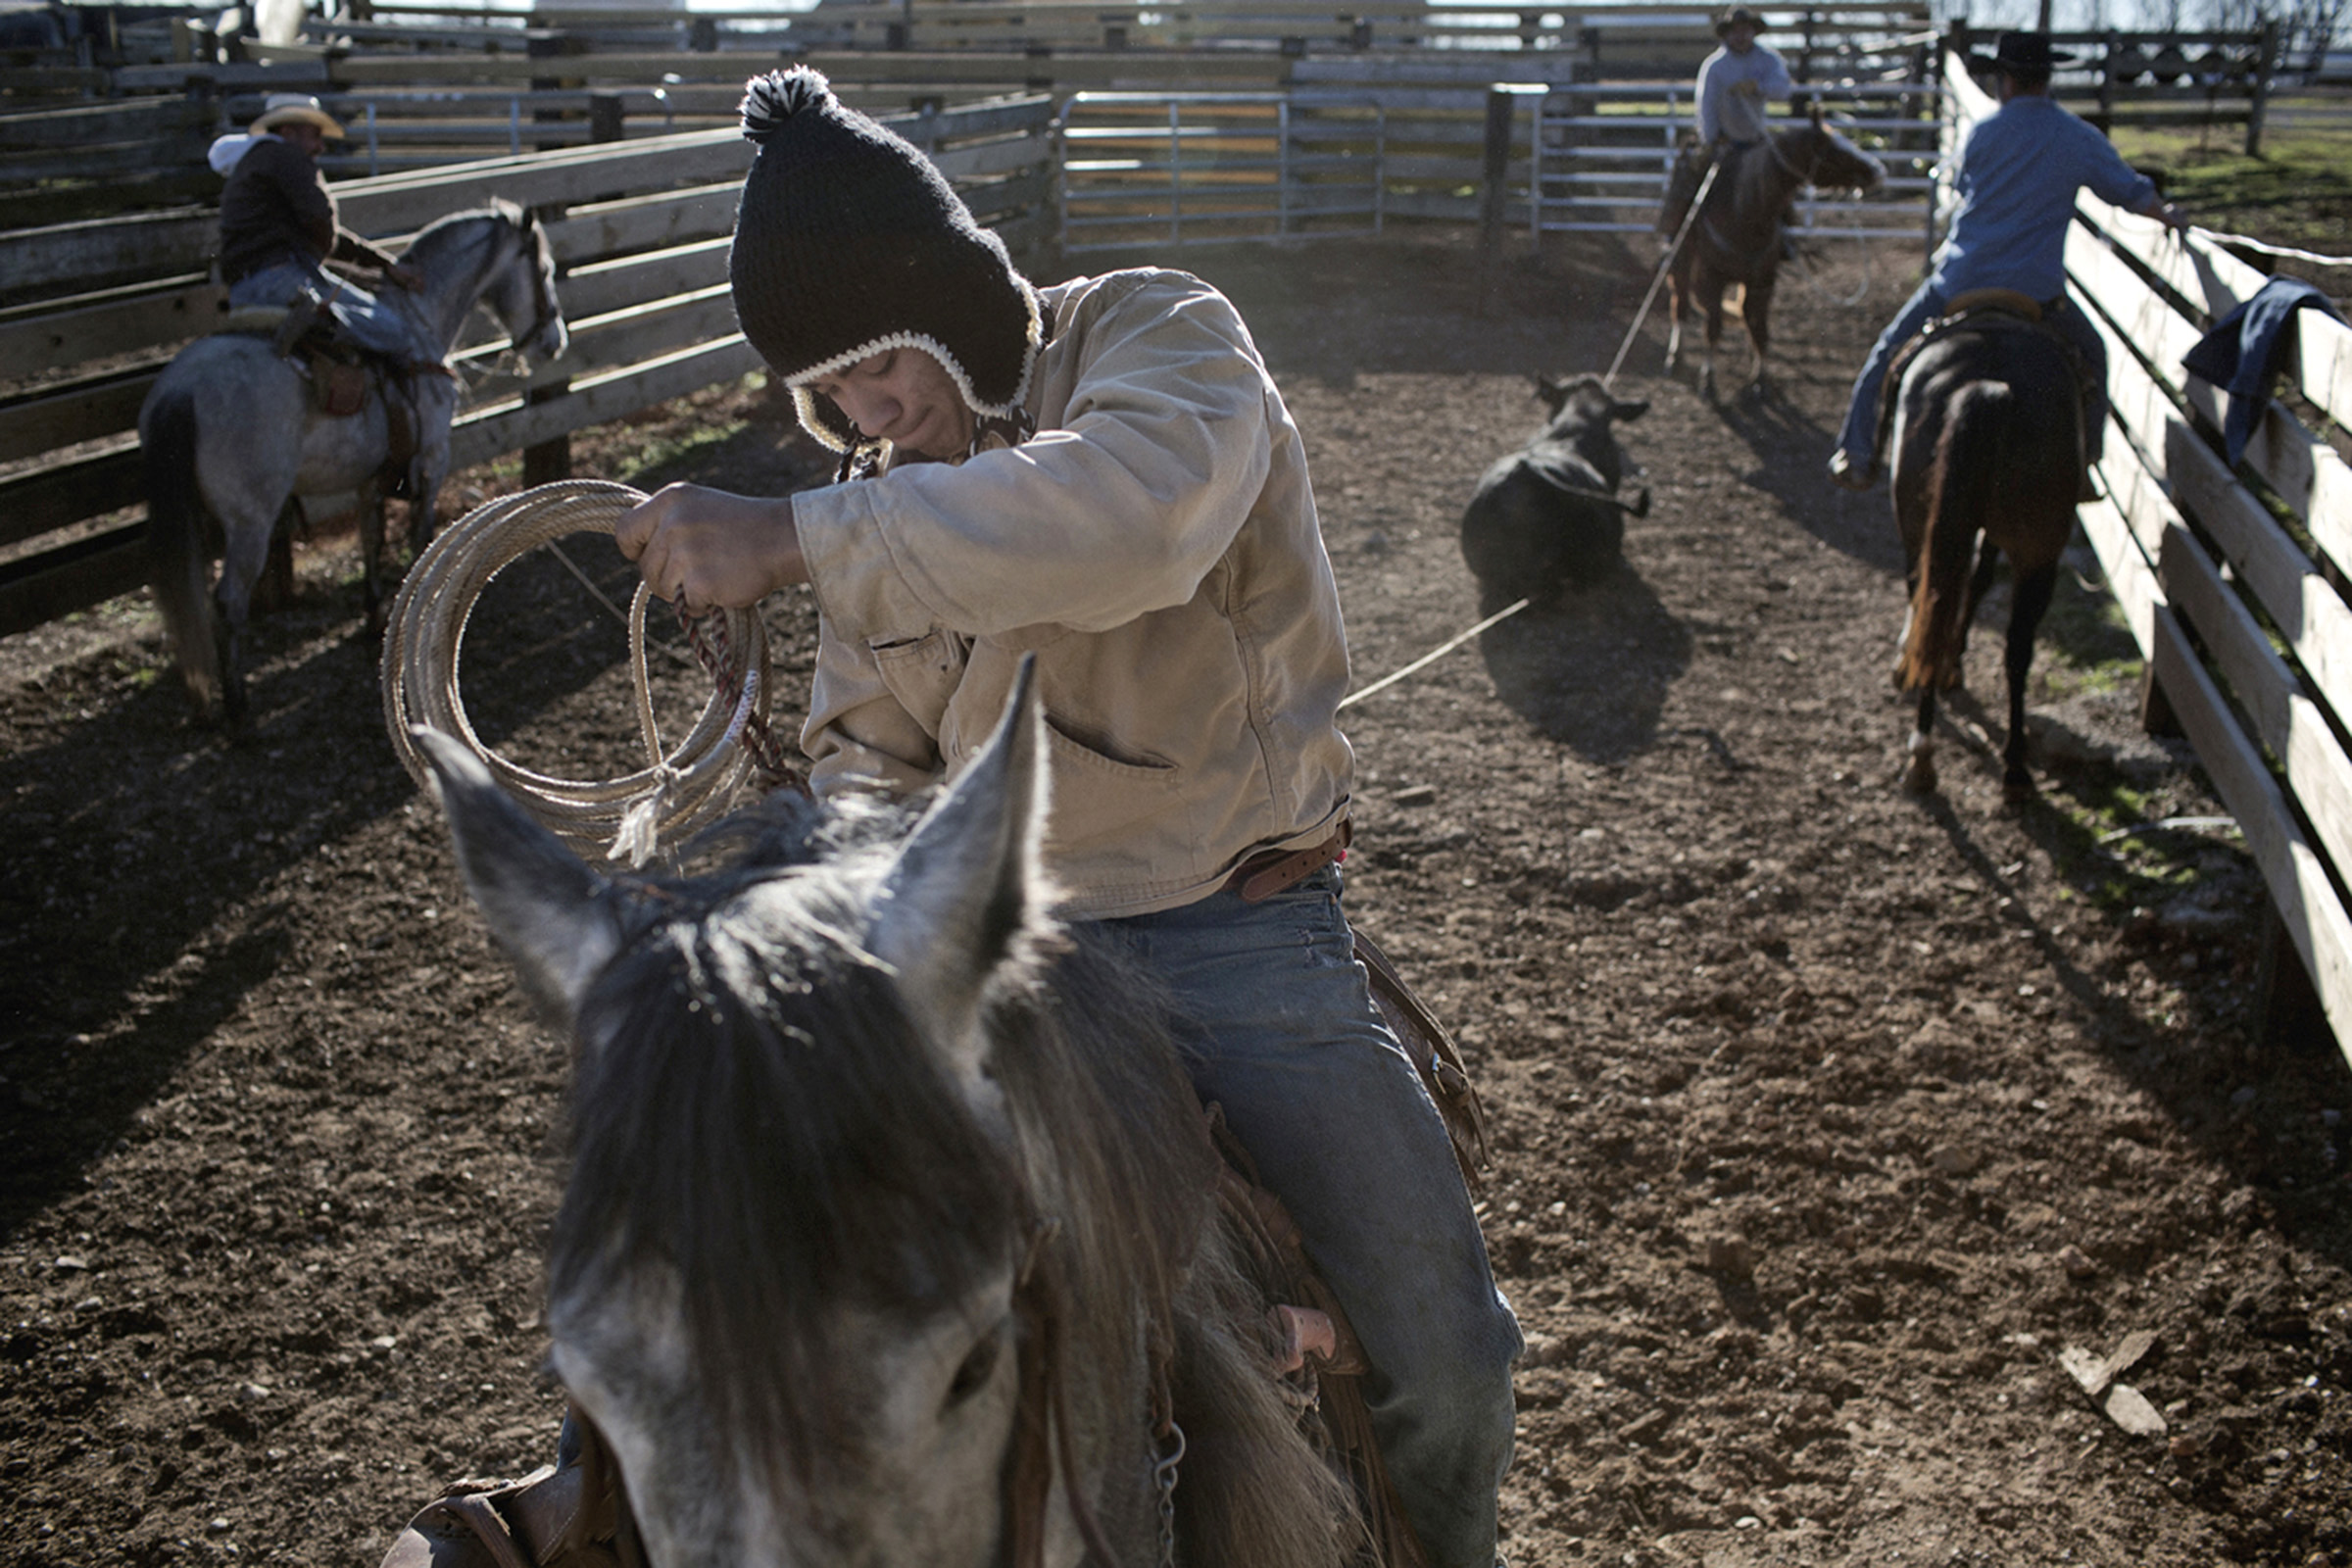 Marcos Espinoza, 17, practices his roping skills on a family trip to a ranch in the outskirts of Bowling Green, Kentucky. Roping is an essential skill for a true ranchero, since rancheros sometimes need to catch the cattle in order to give them medicine or slaughter them. (Photo by Betina Garcia/GroundTruth)